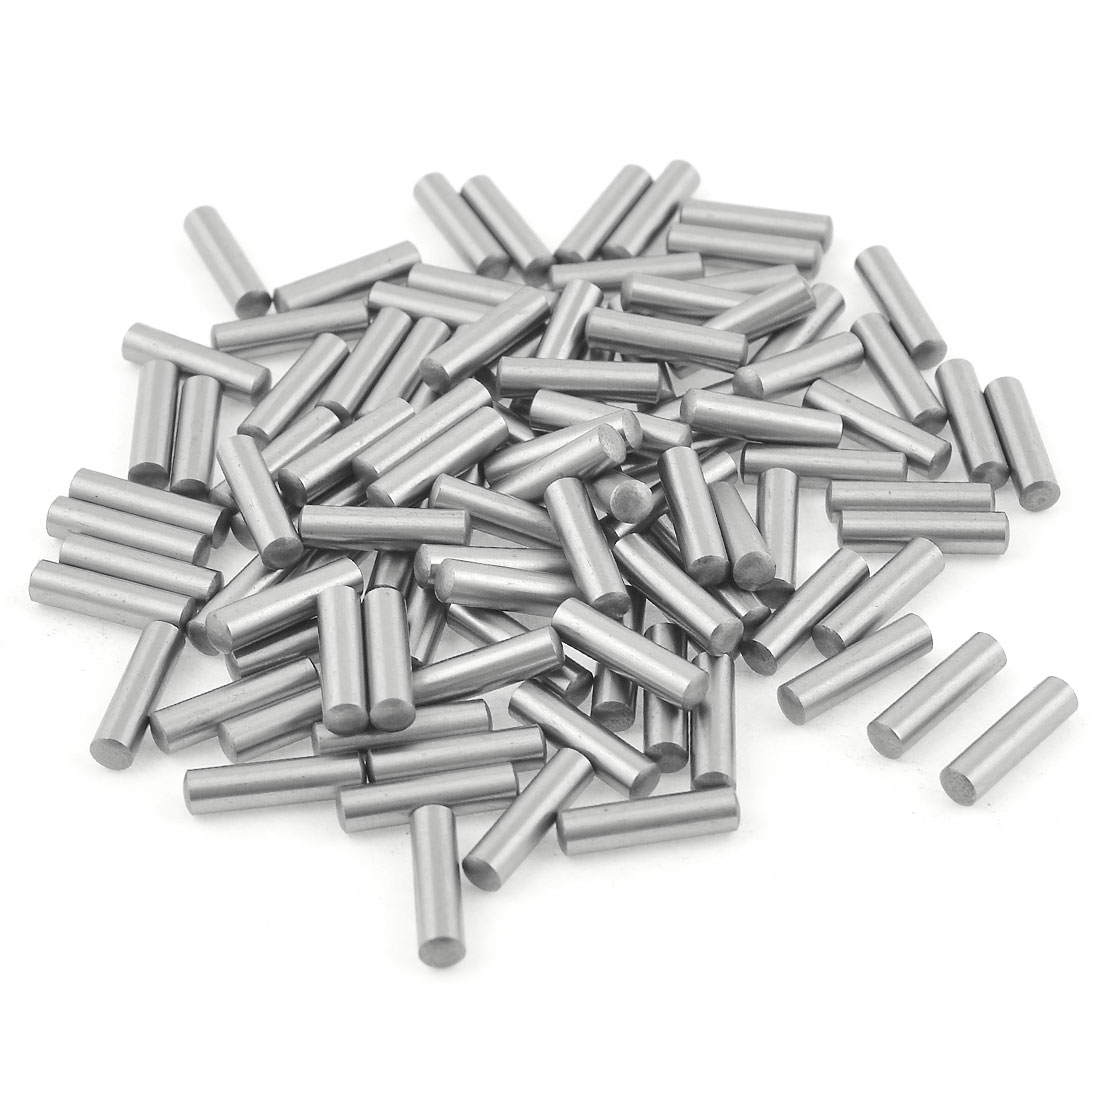 100 Pcs 3.6mm x 15.8mm Parallel Dowel Pins Fasten Elements